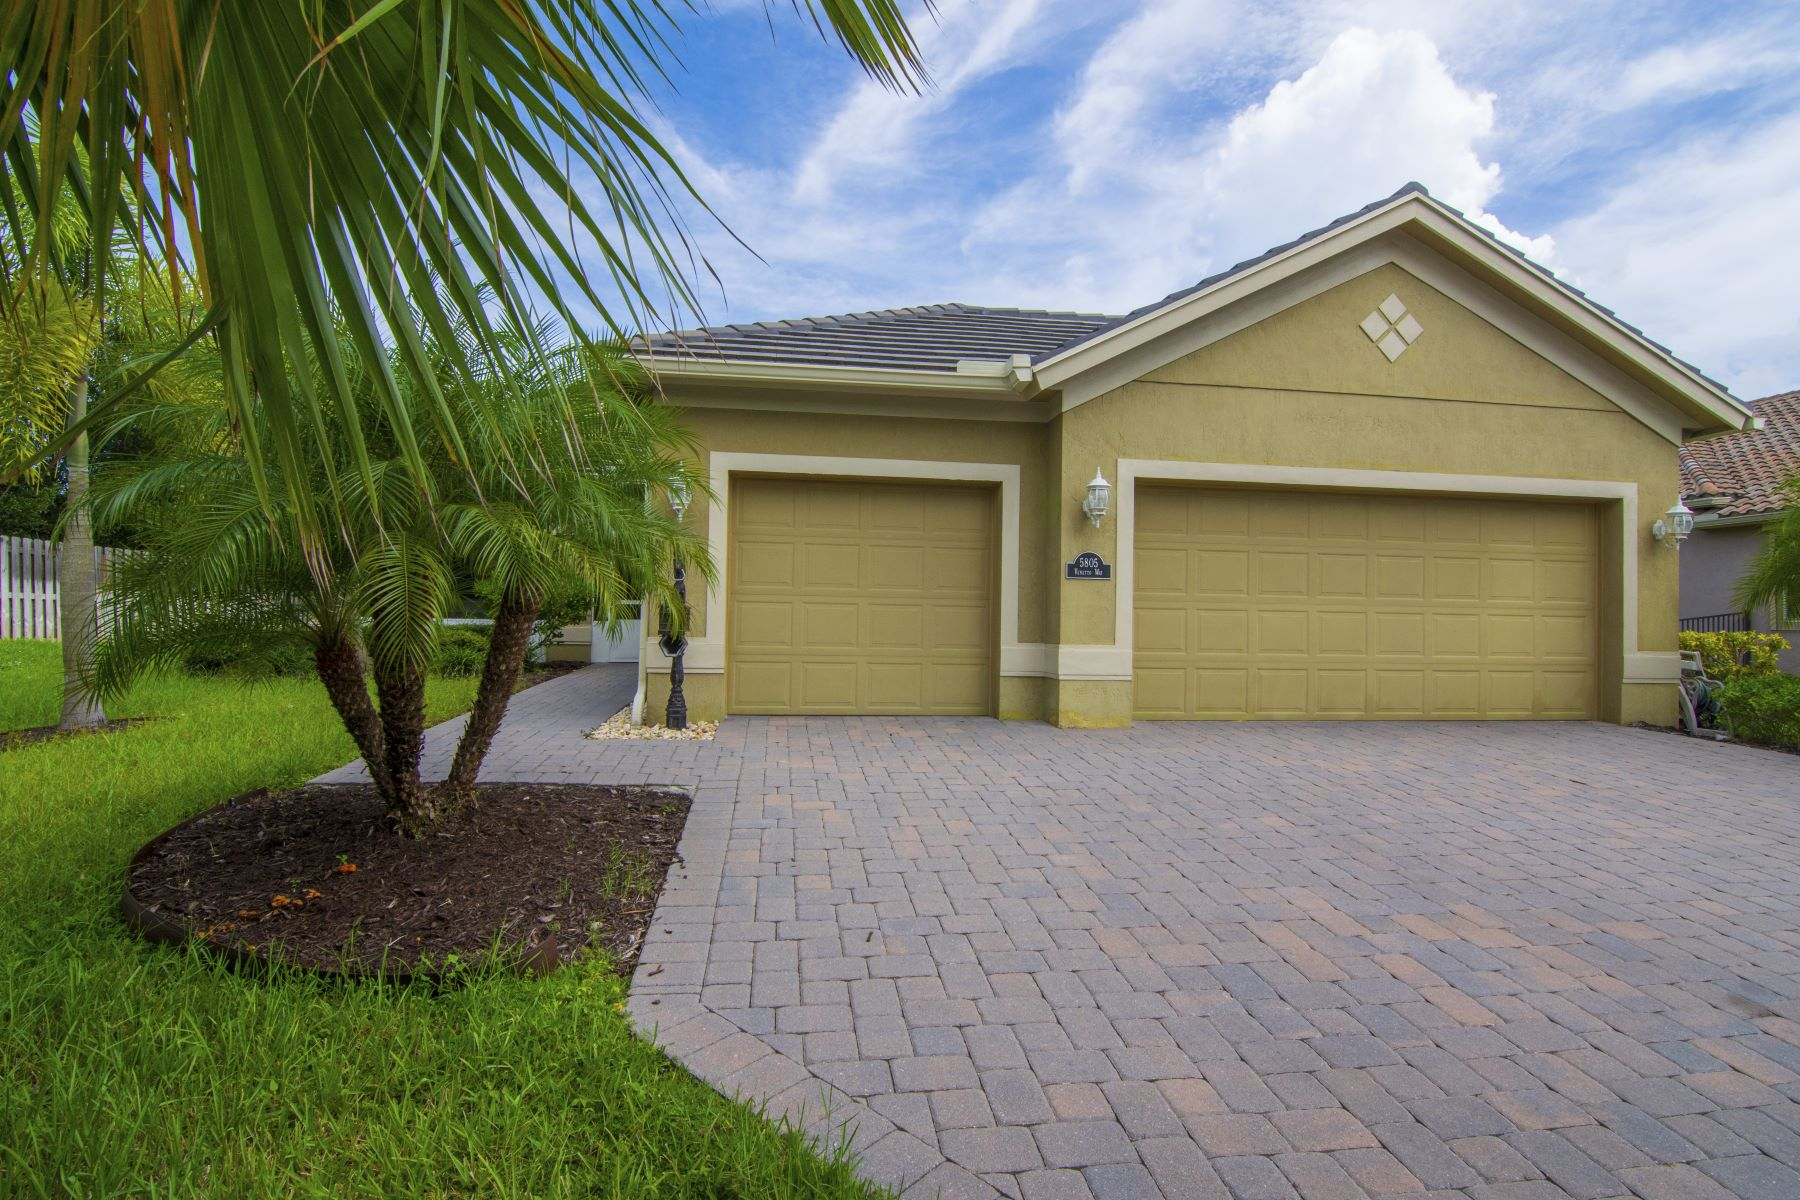 Single Family Homes for Sale at 5805 Venetto Way, Vero Beach, FL 5805 Venetto Way Vero Beach, Florida 32967 United States